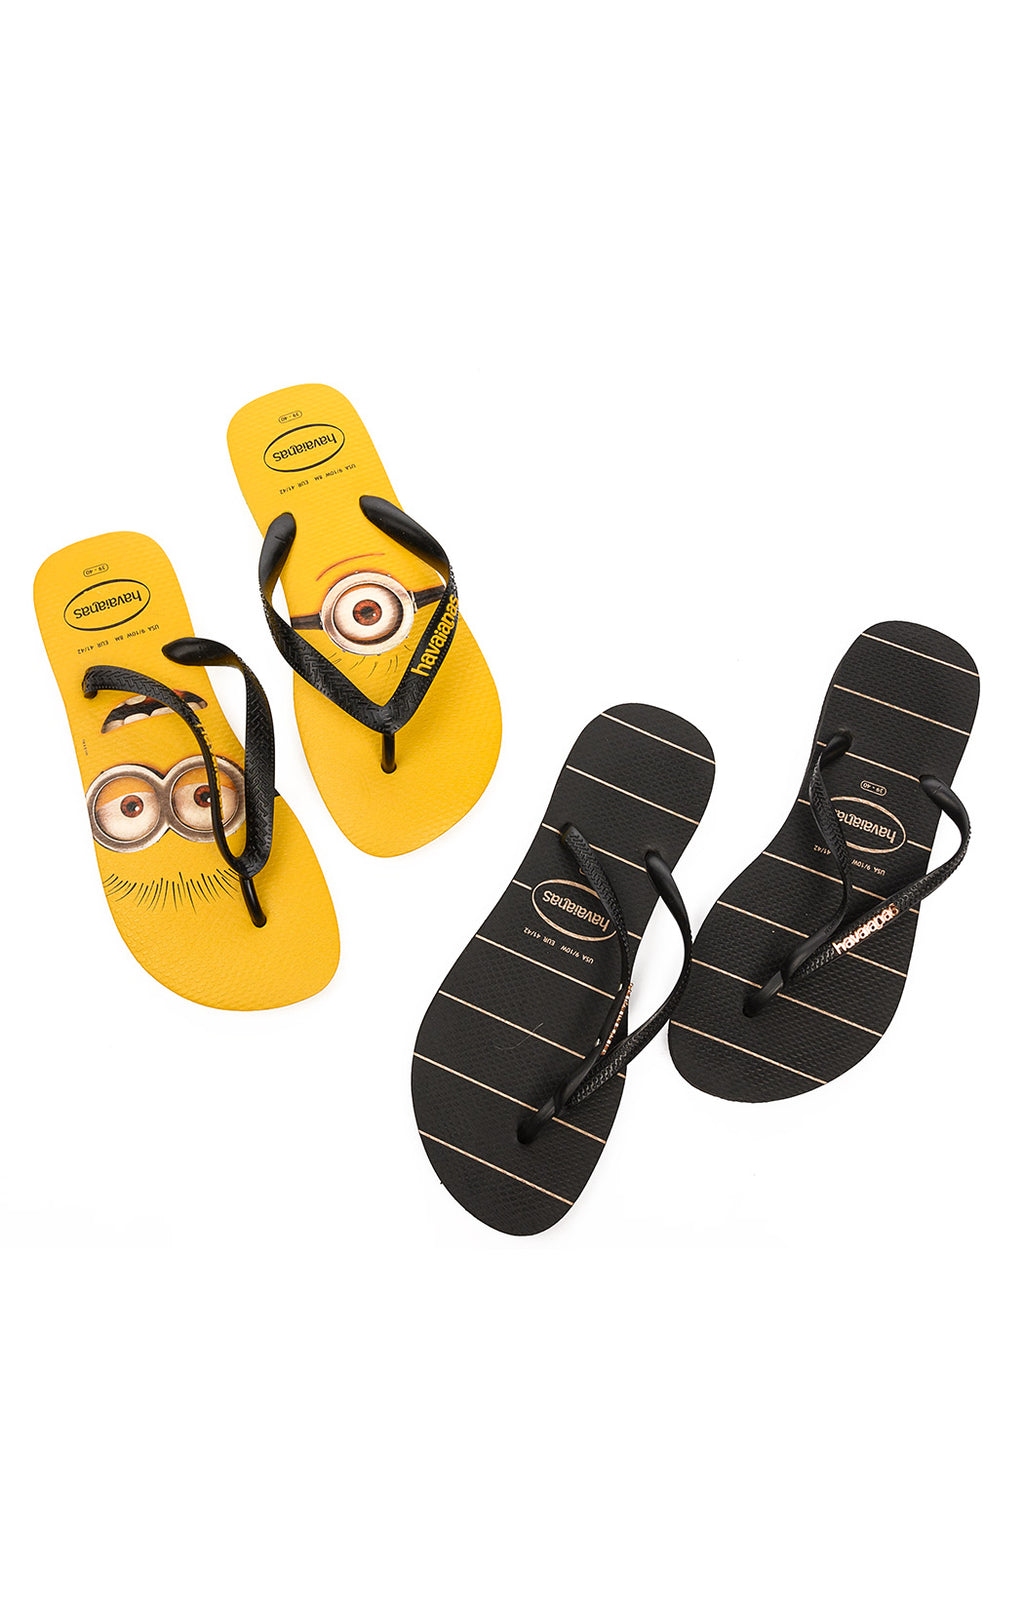 Front view of HAVAIANAS Flip flops Size: 9/10